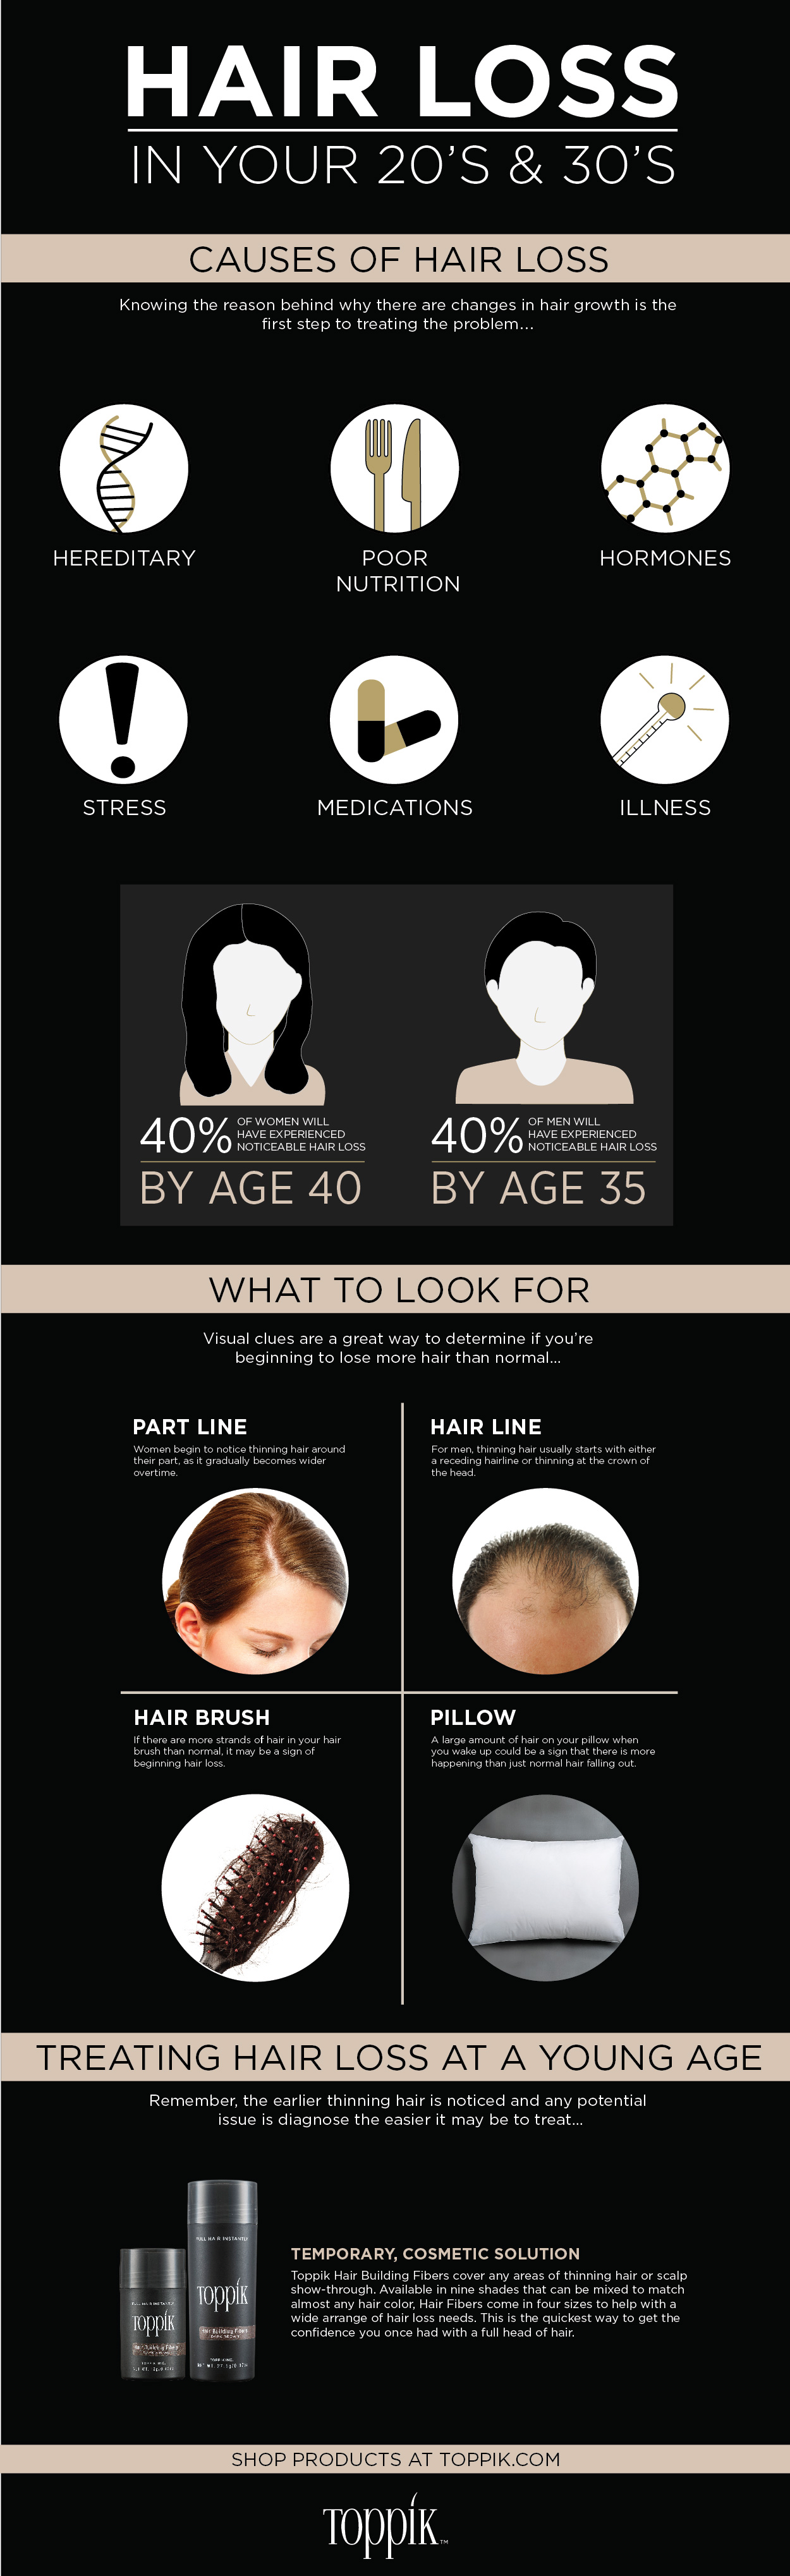 Hair Loss in Your 20s and 30s